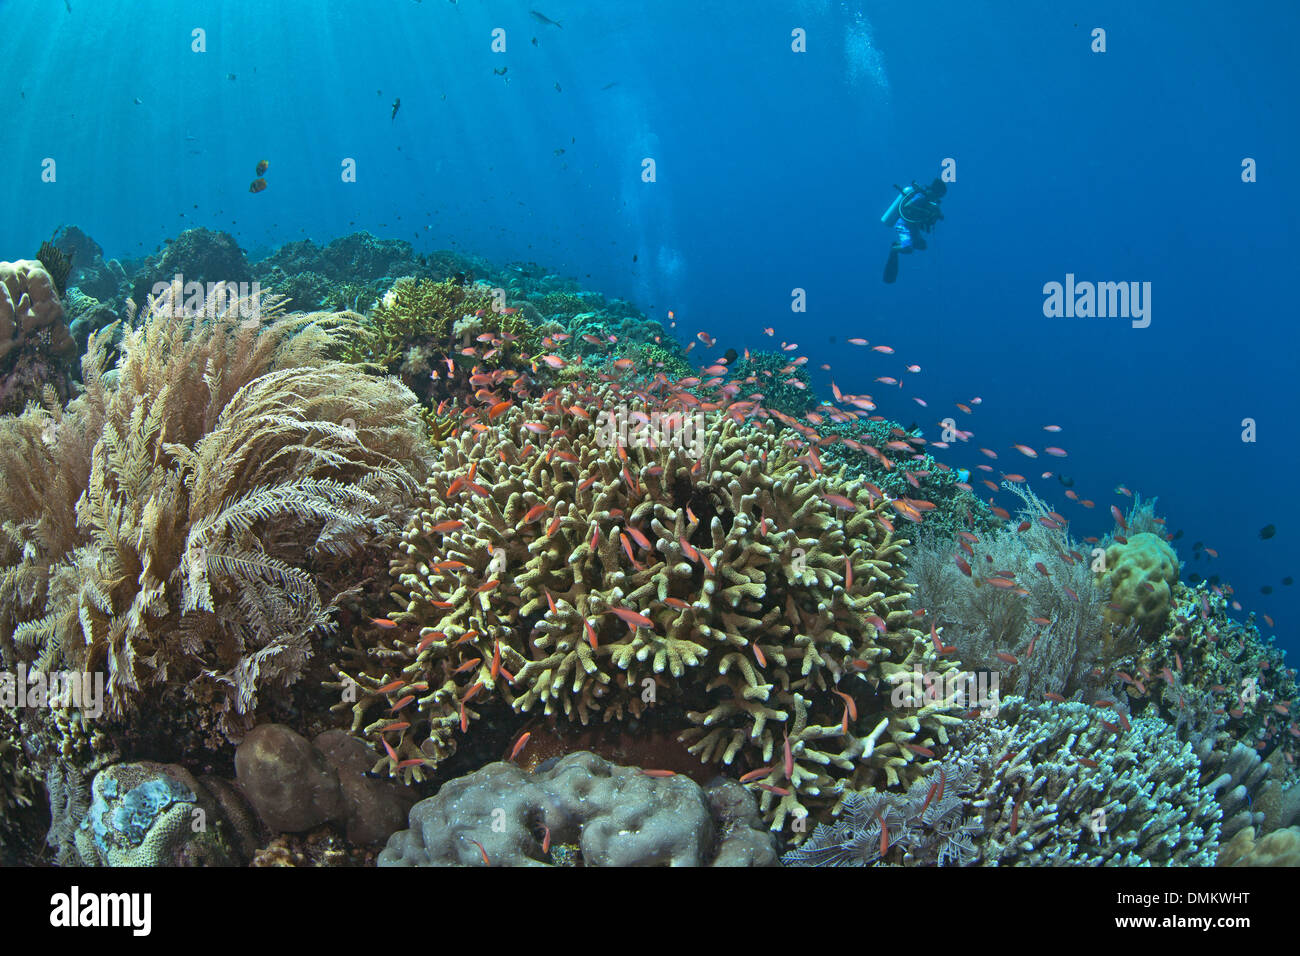 scuba diver hovers over coral reef with anthias tropical fish. - Stock Image